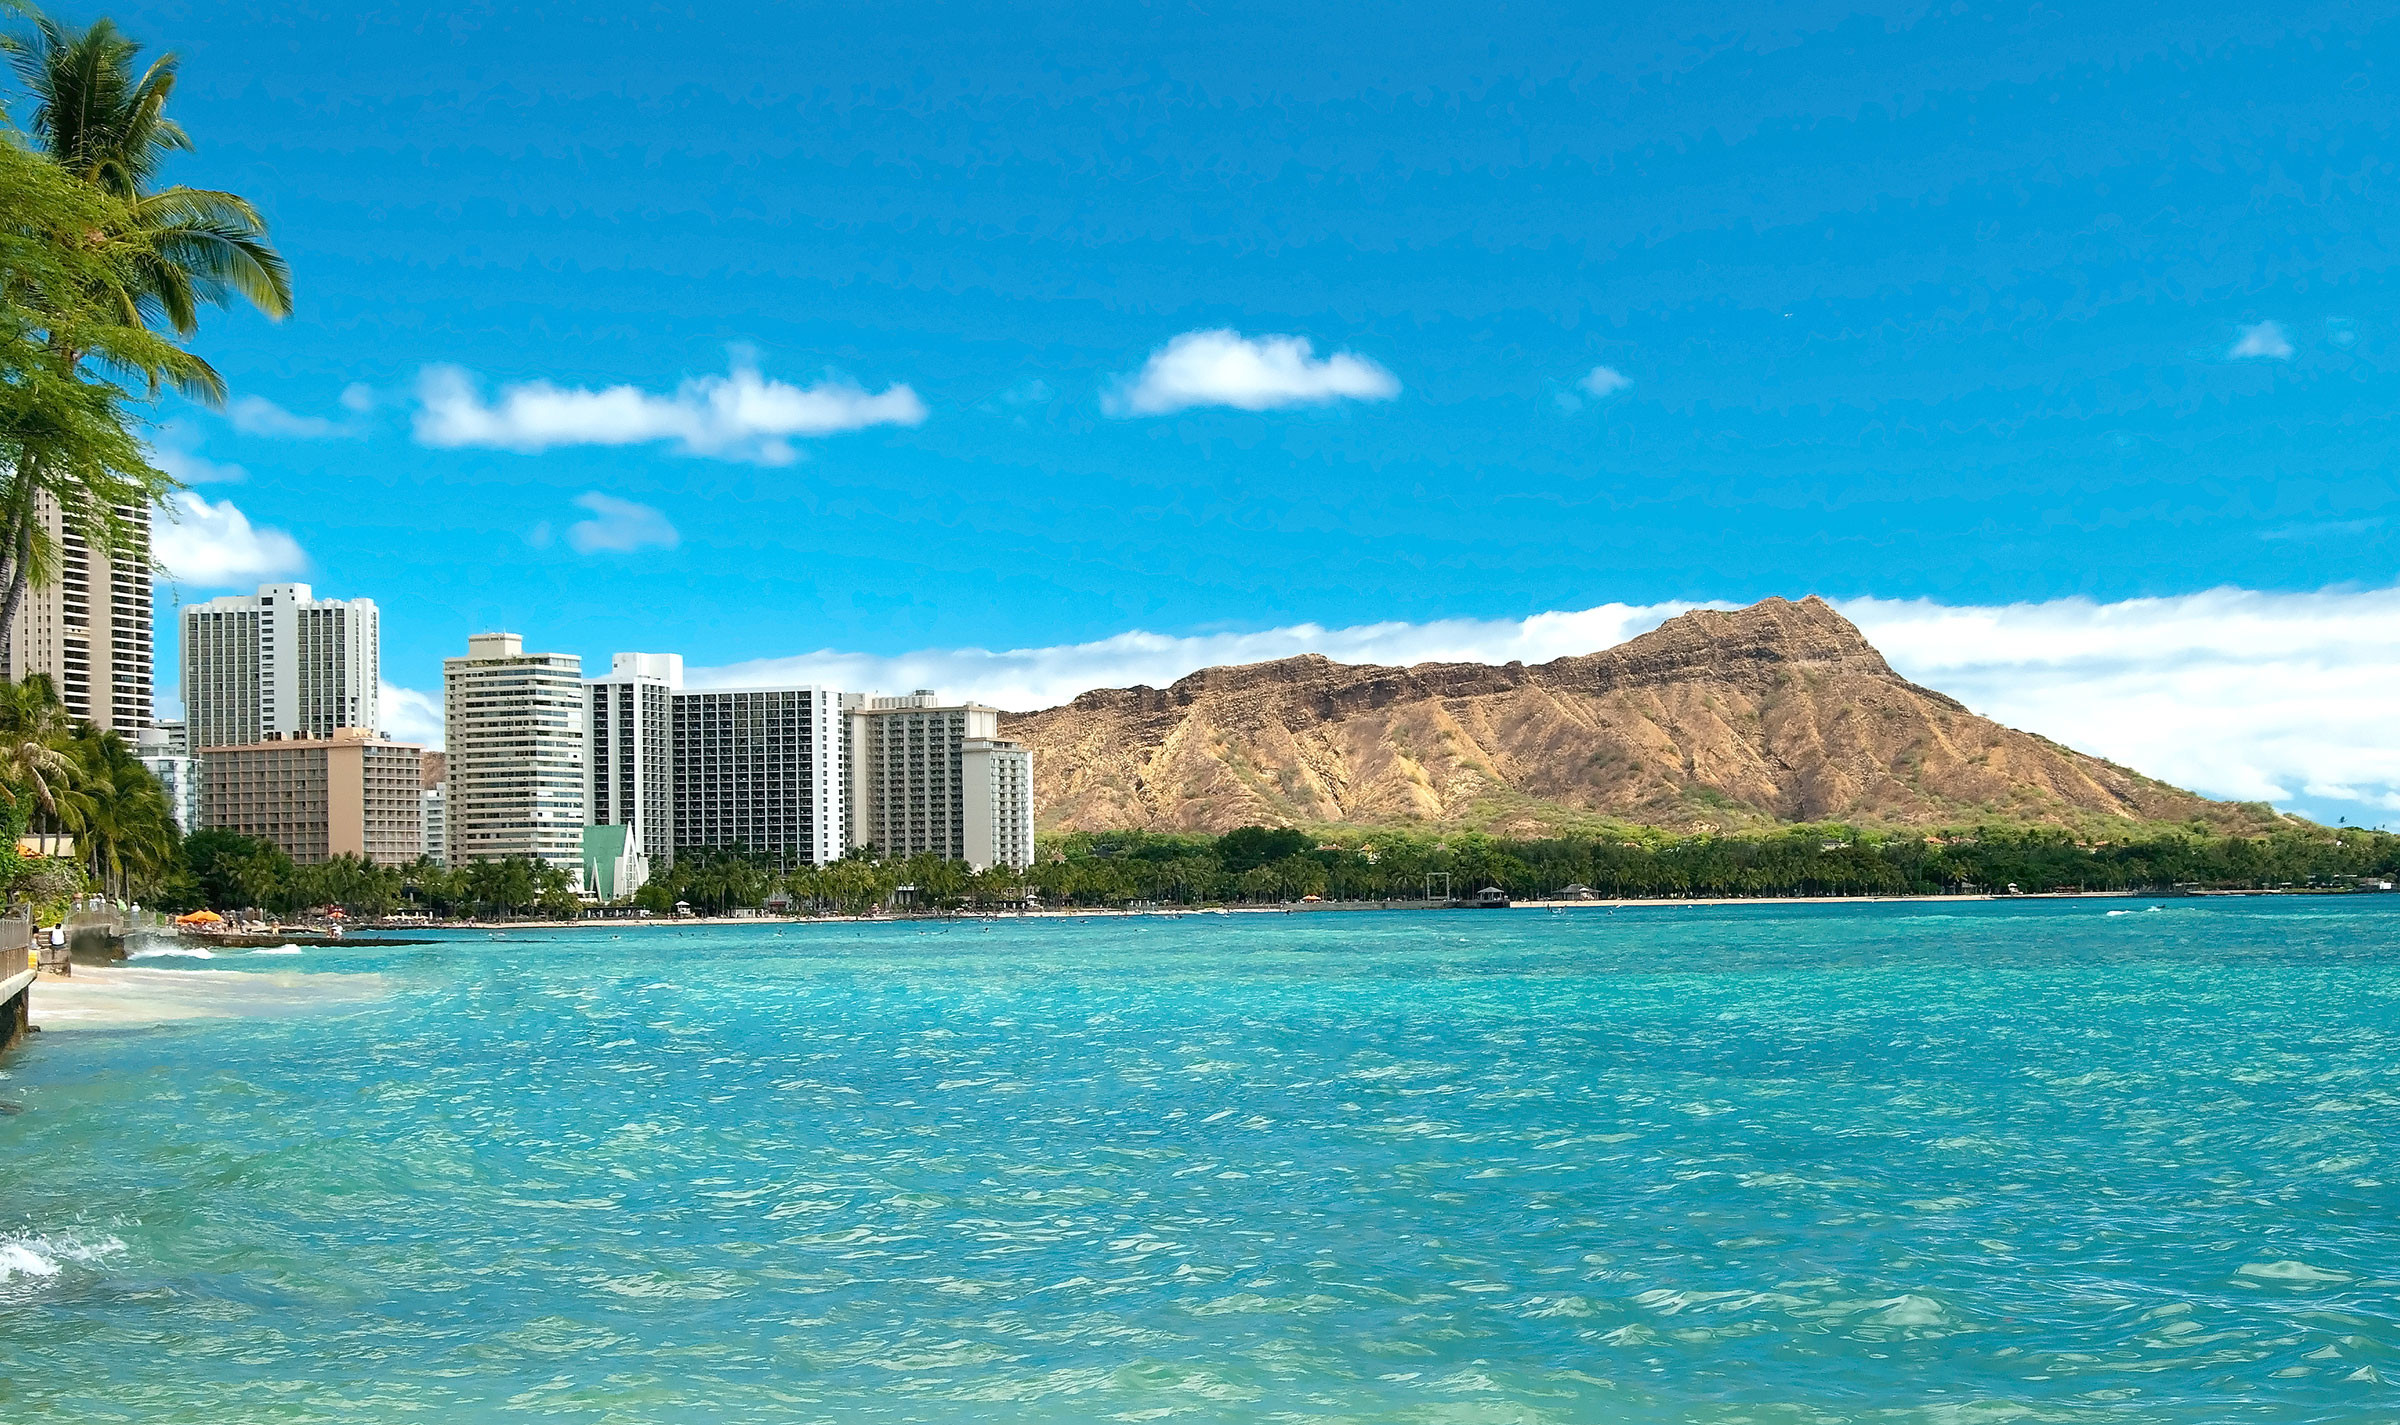 2400x1425 hawaii property management background.jpg